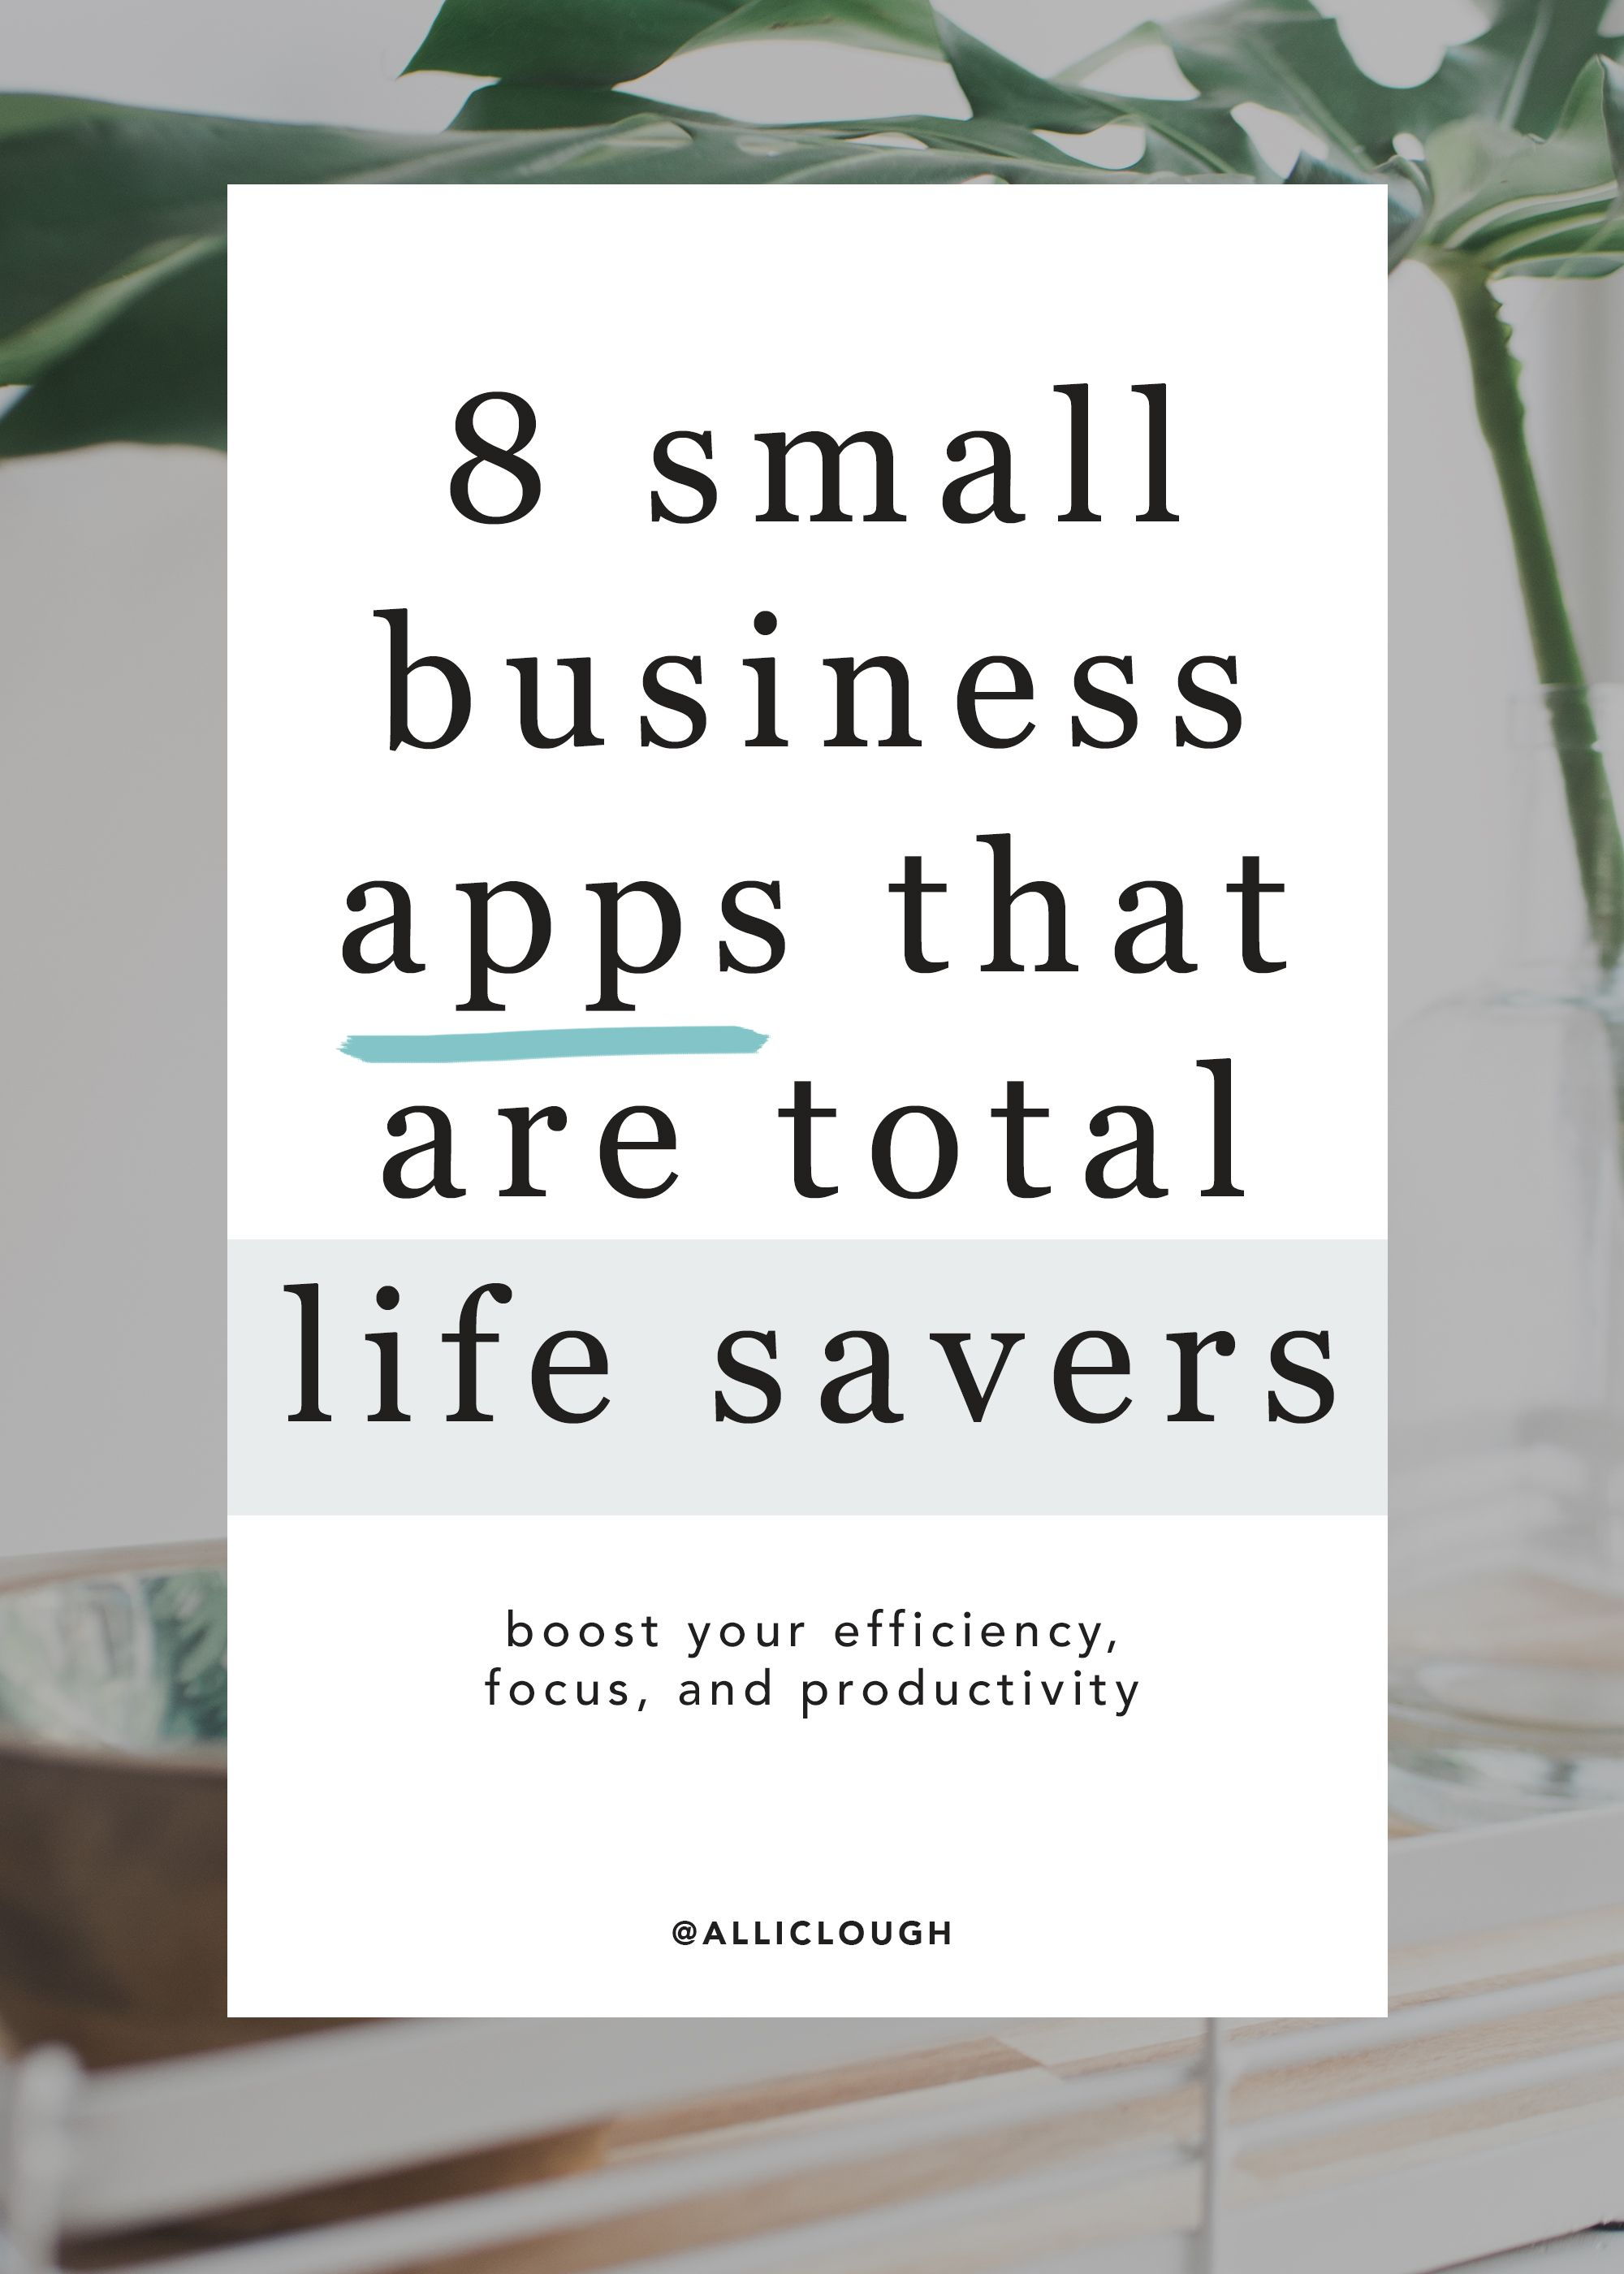 8 Small Business Apps That Are Total Life Savers -